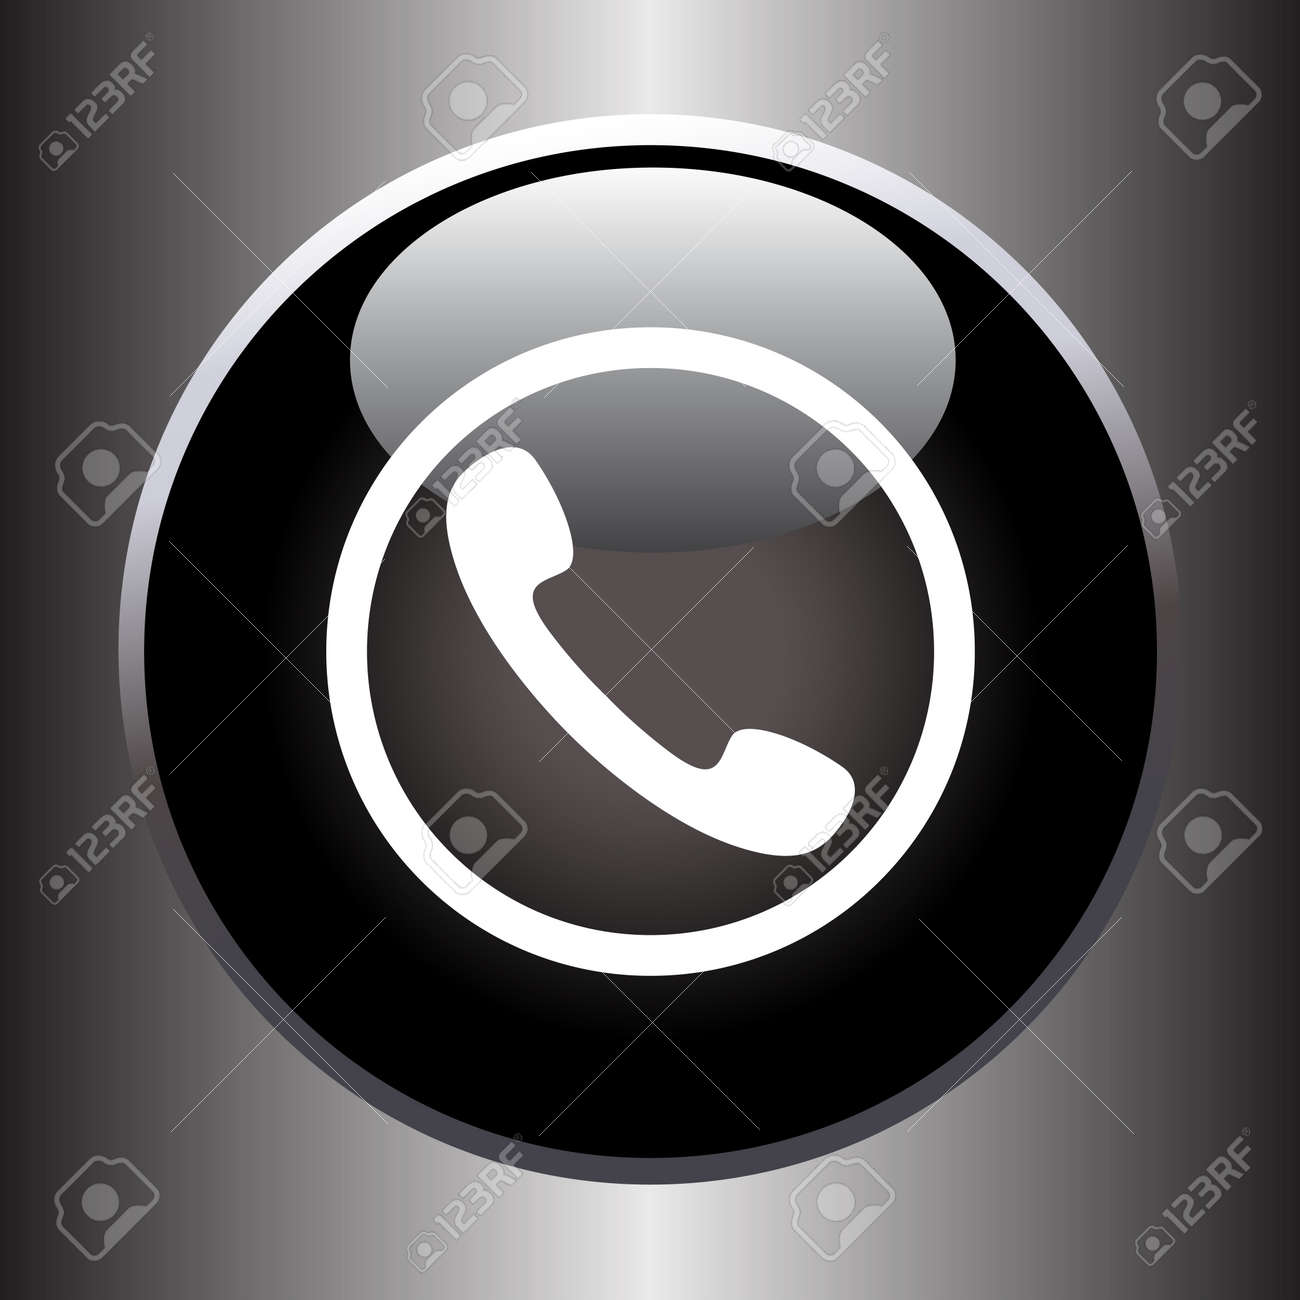 Phone handset icon on black glass button. Vector illustration Stock Vector - 35187149